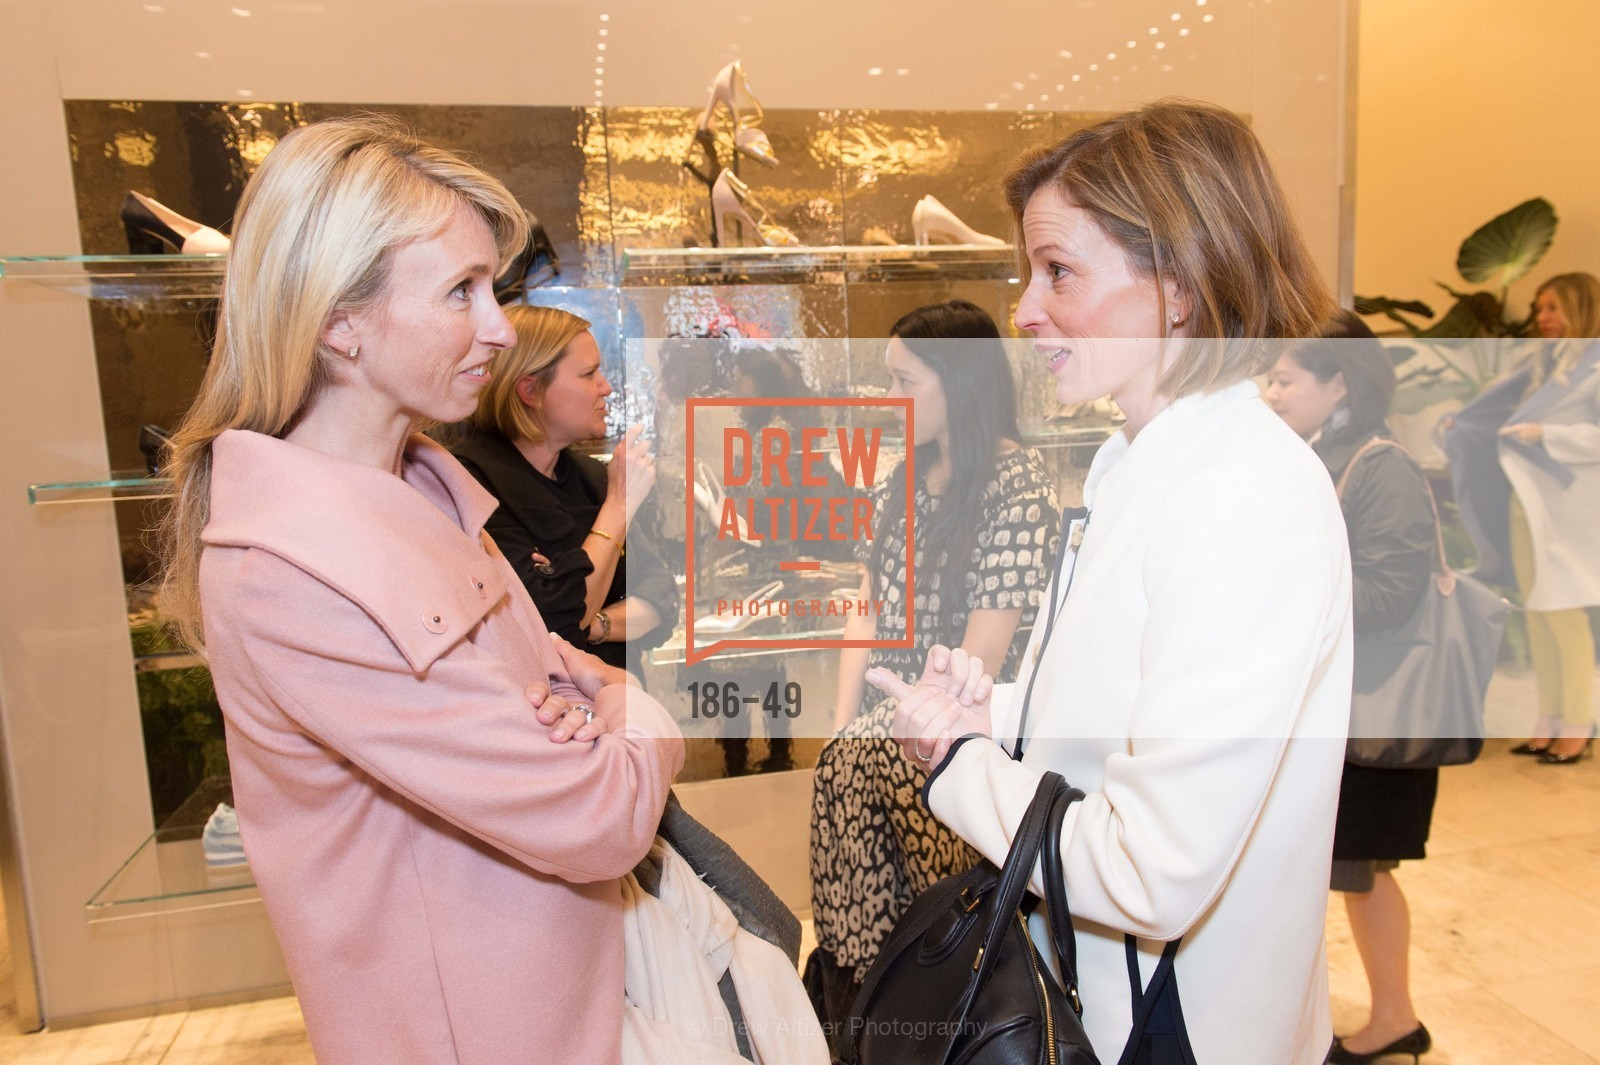 Marisa Reyna, Vickie Barret, Luncheon Hosted by Max Mara, Max Mara. 175 Post St, San Francisco, CA 94108, April 21st, 2015,Drew Altizer, Drew Altizer Photography, full-service agency, private events, San Francisco photographer, photographer california